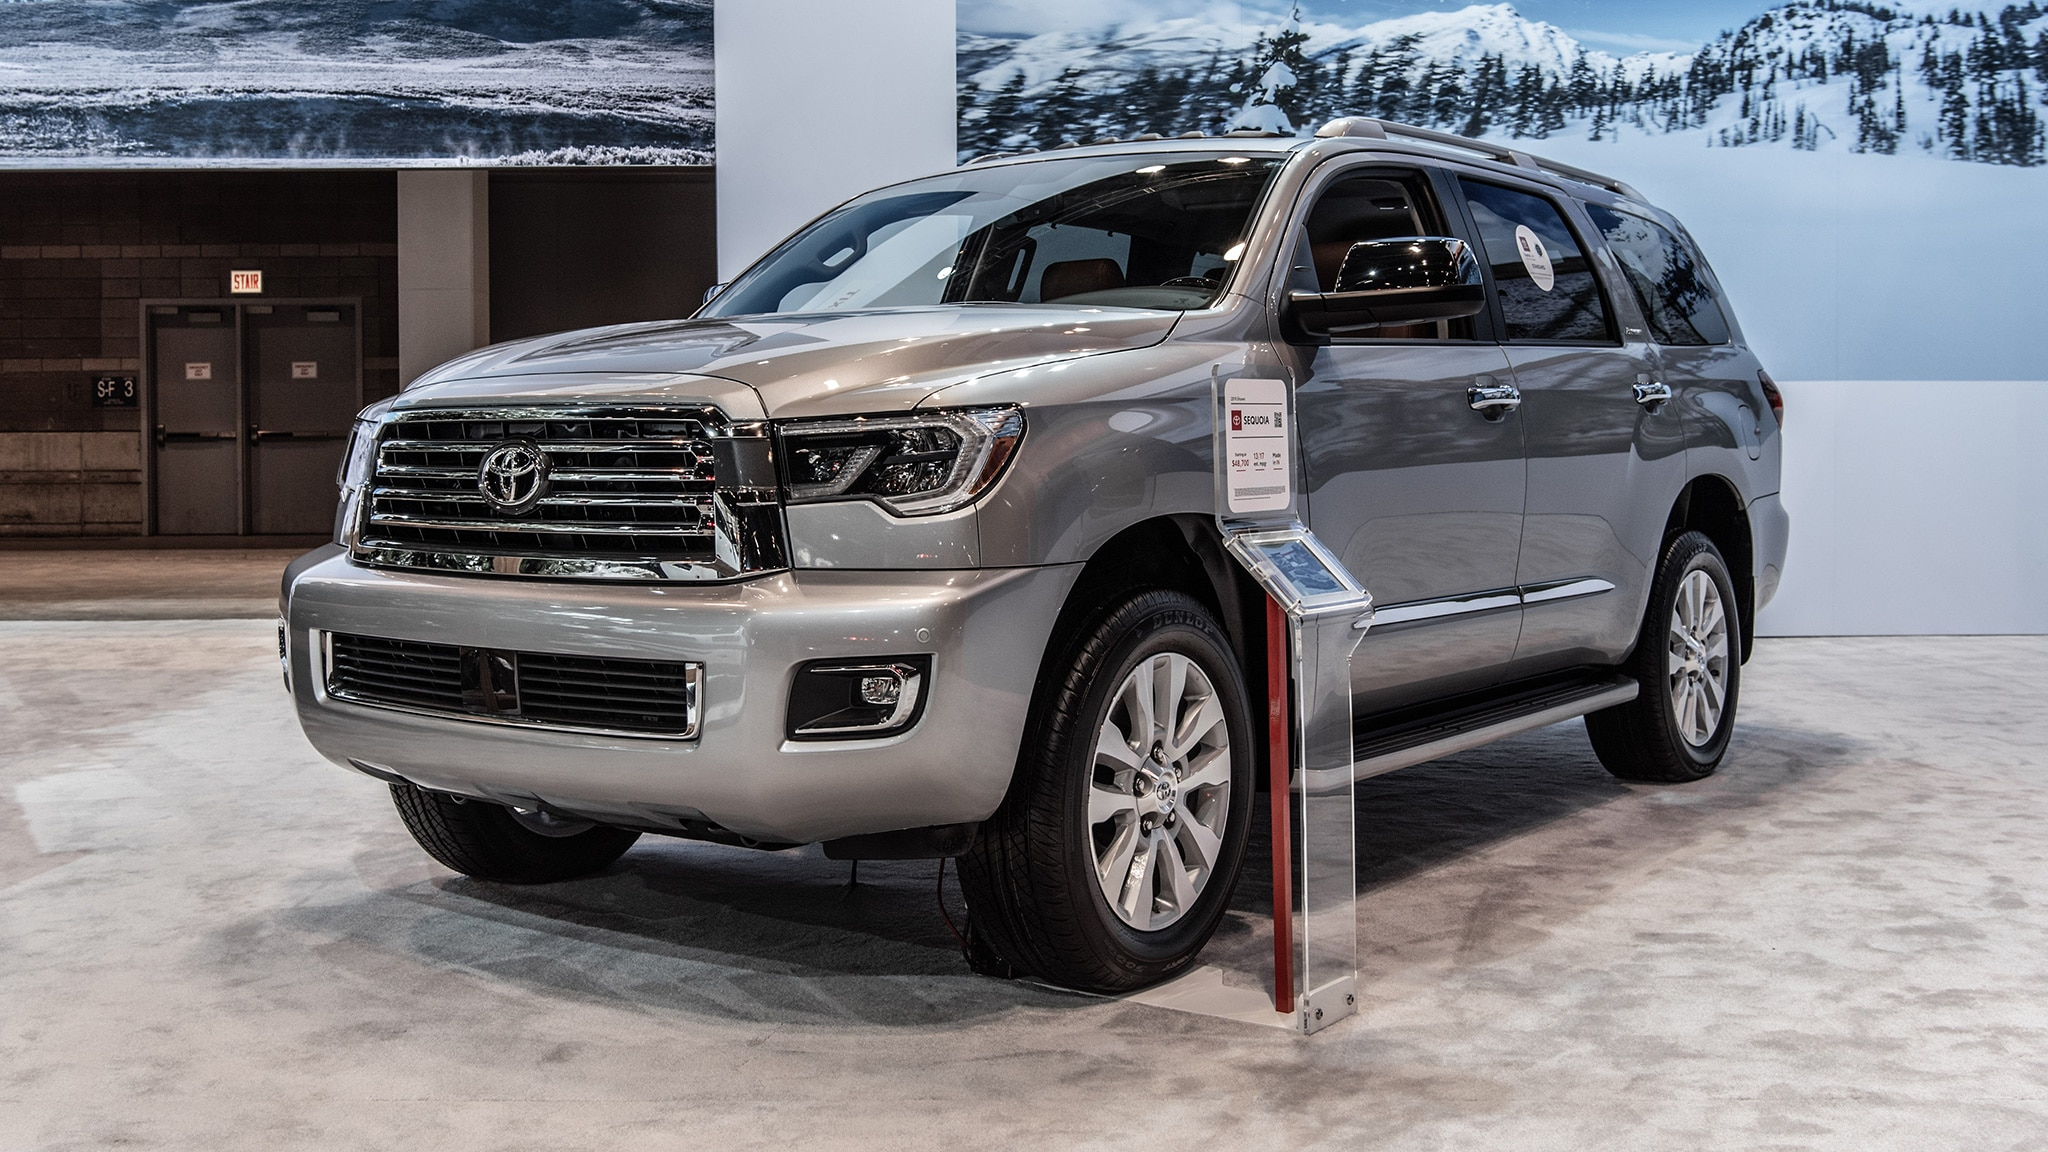 2019 toyota sequoia trd sport review  dated night